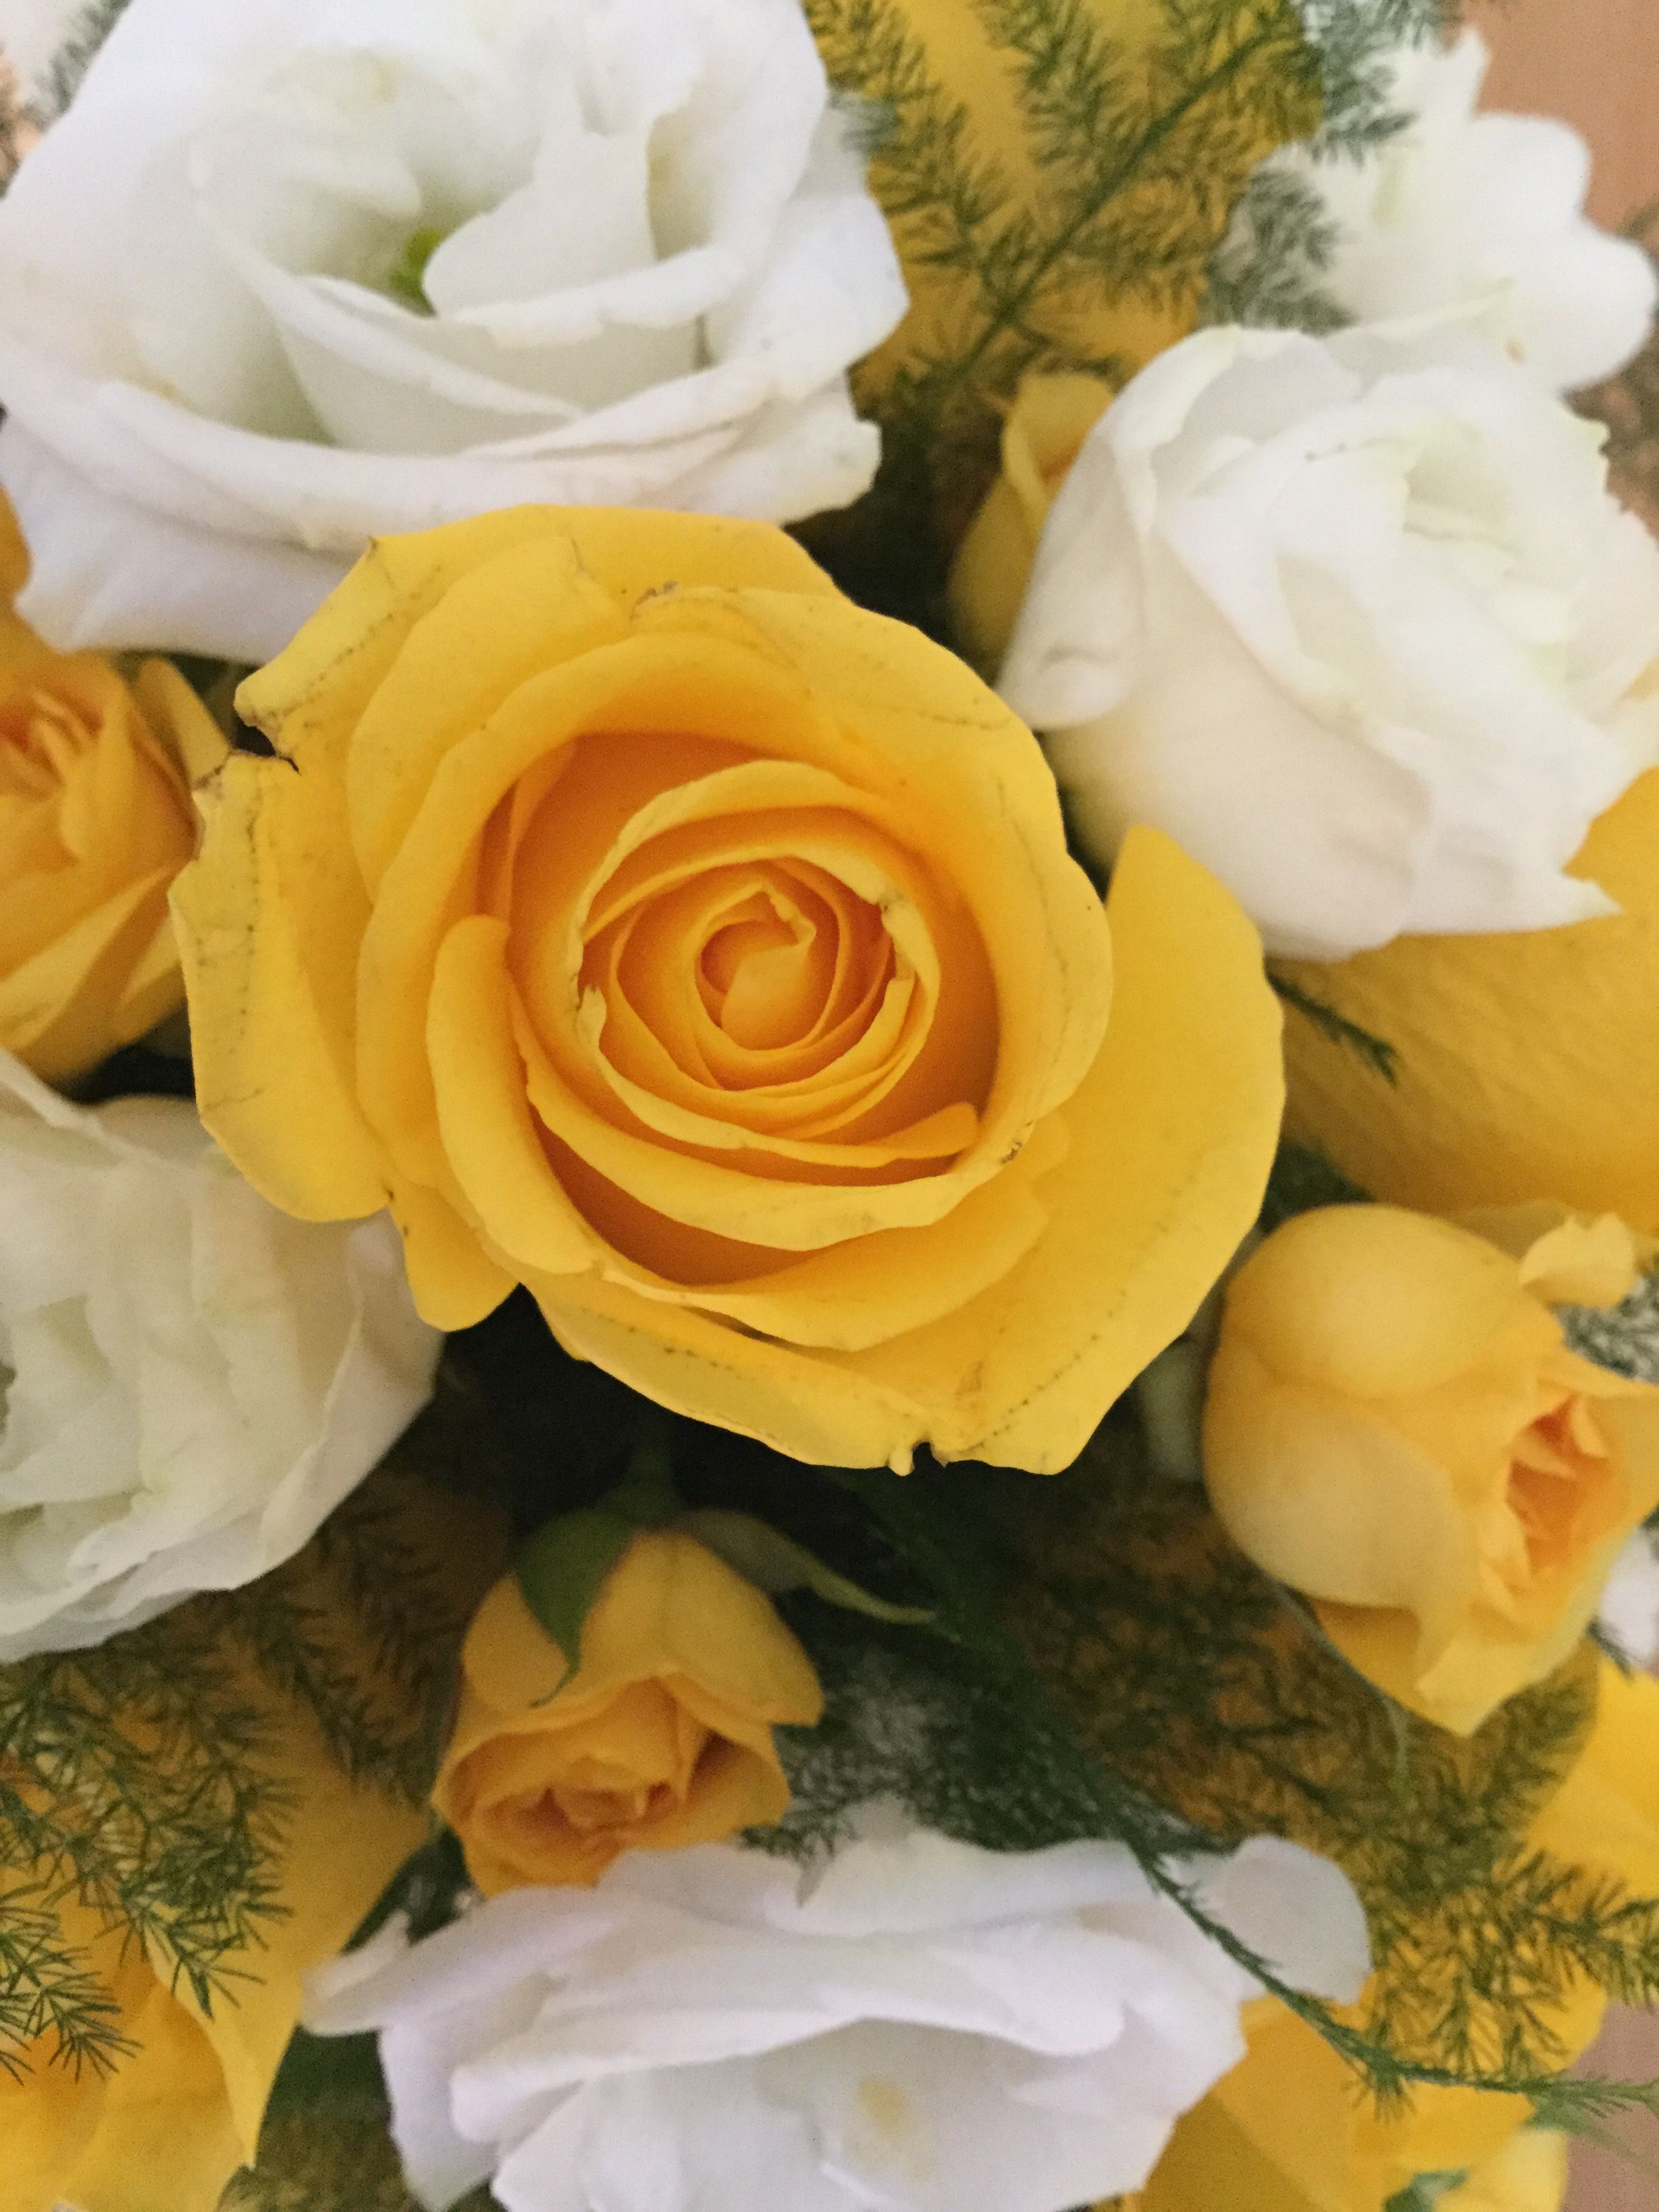 Yellowgold rose from my bouquet wedding flowers bouquet yellowgold rose from my bouquet izmirmasajfo